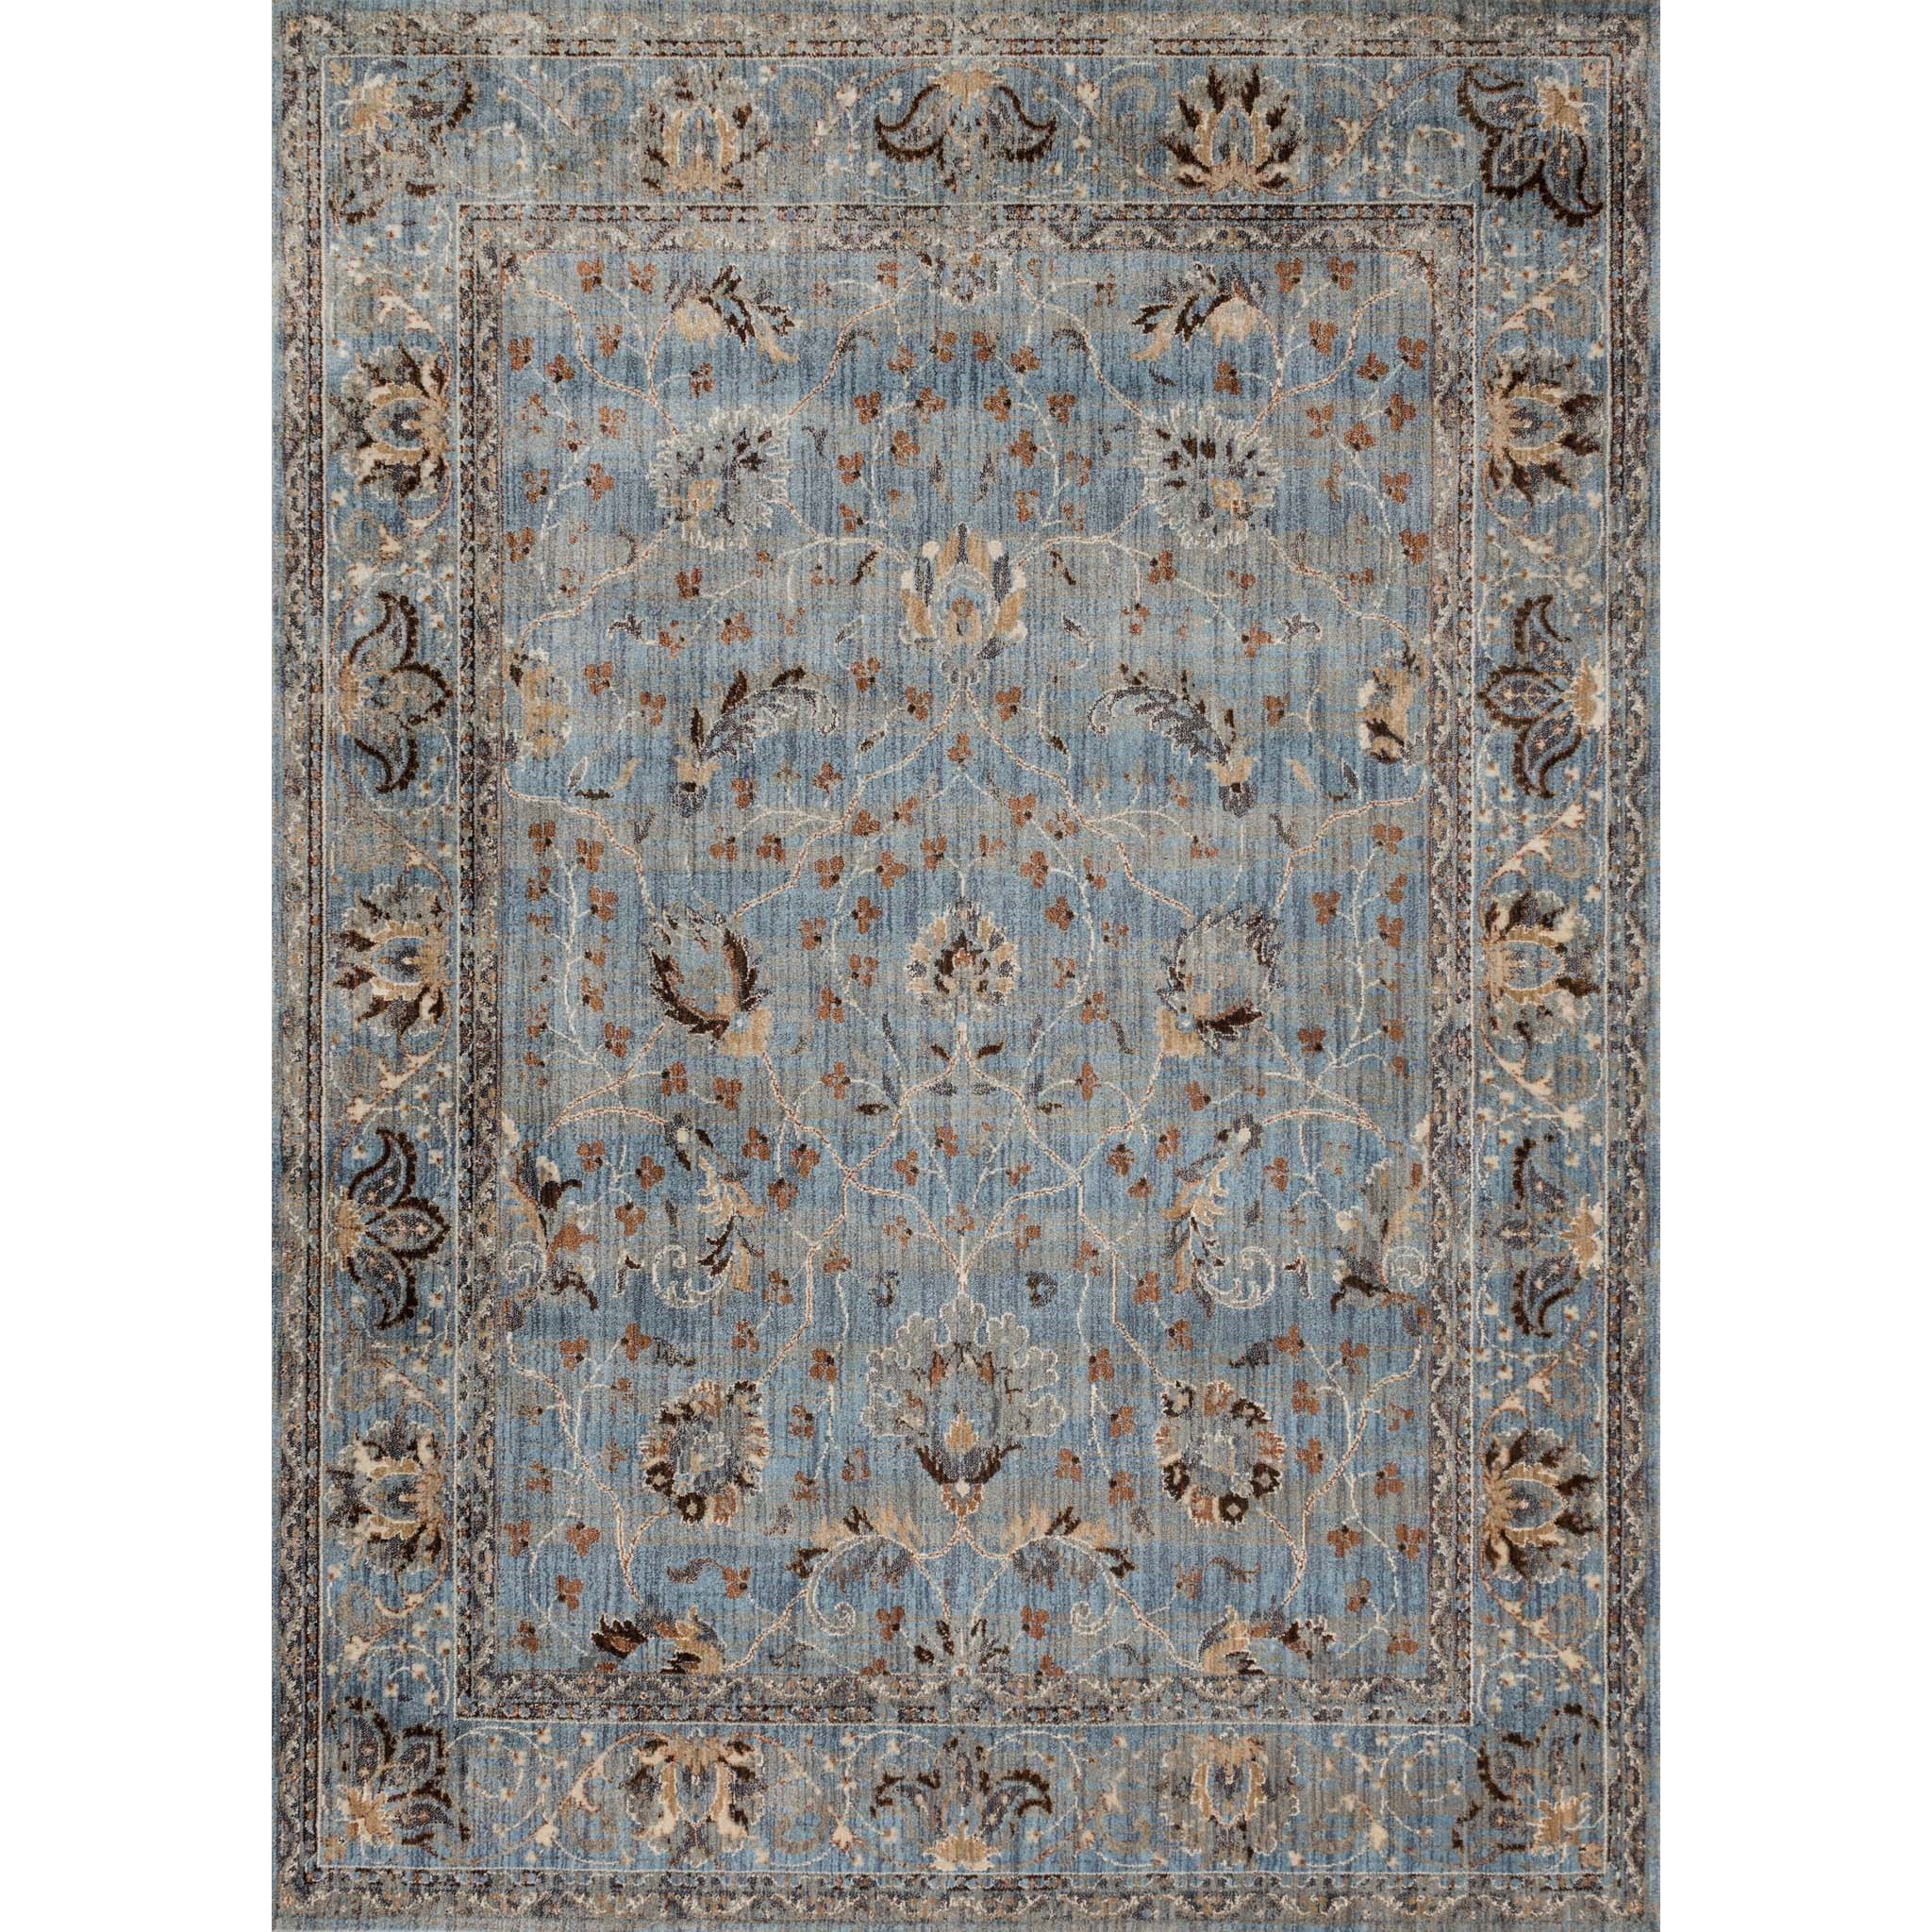 "Kivi 5' 3"" X 5' 3"" Round Rug by Magnolia Home by Joanna Gaines for Loloi at Belfort Furniture"